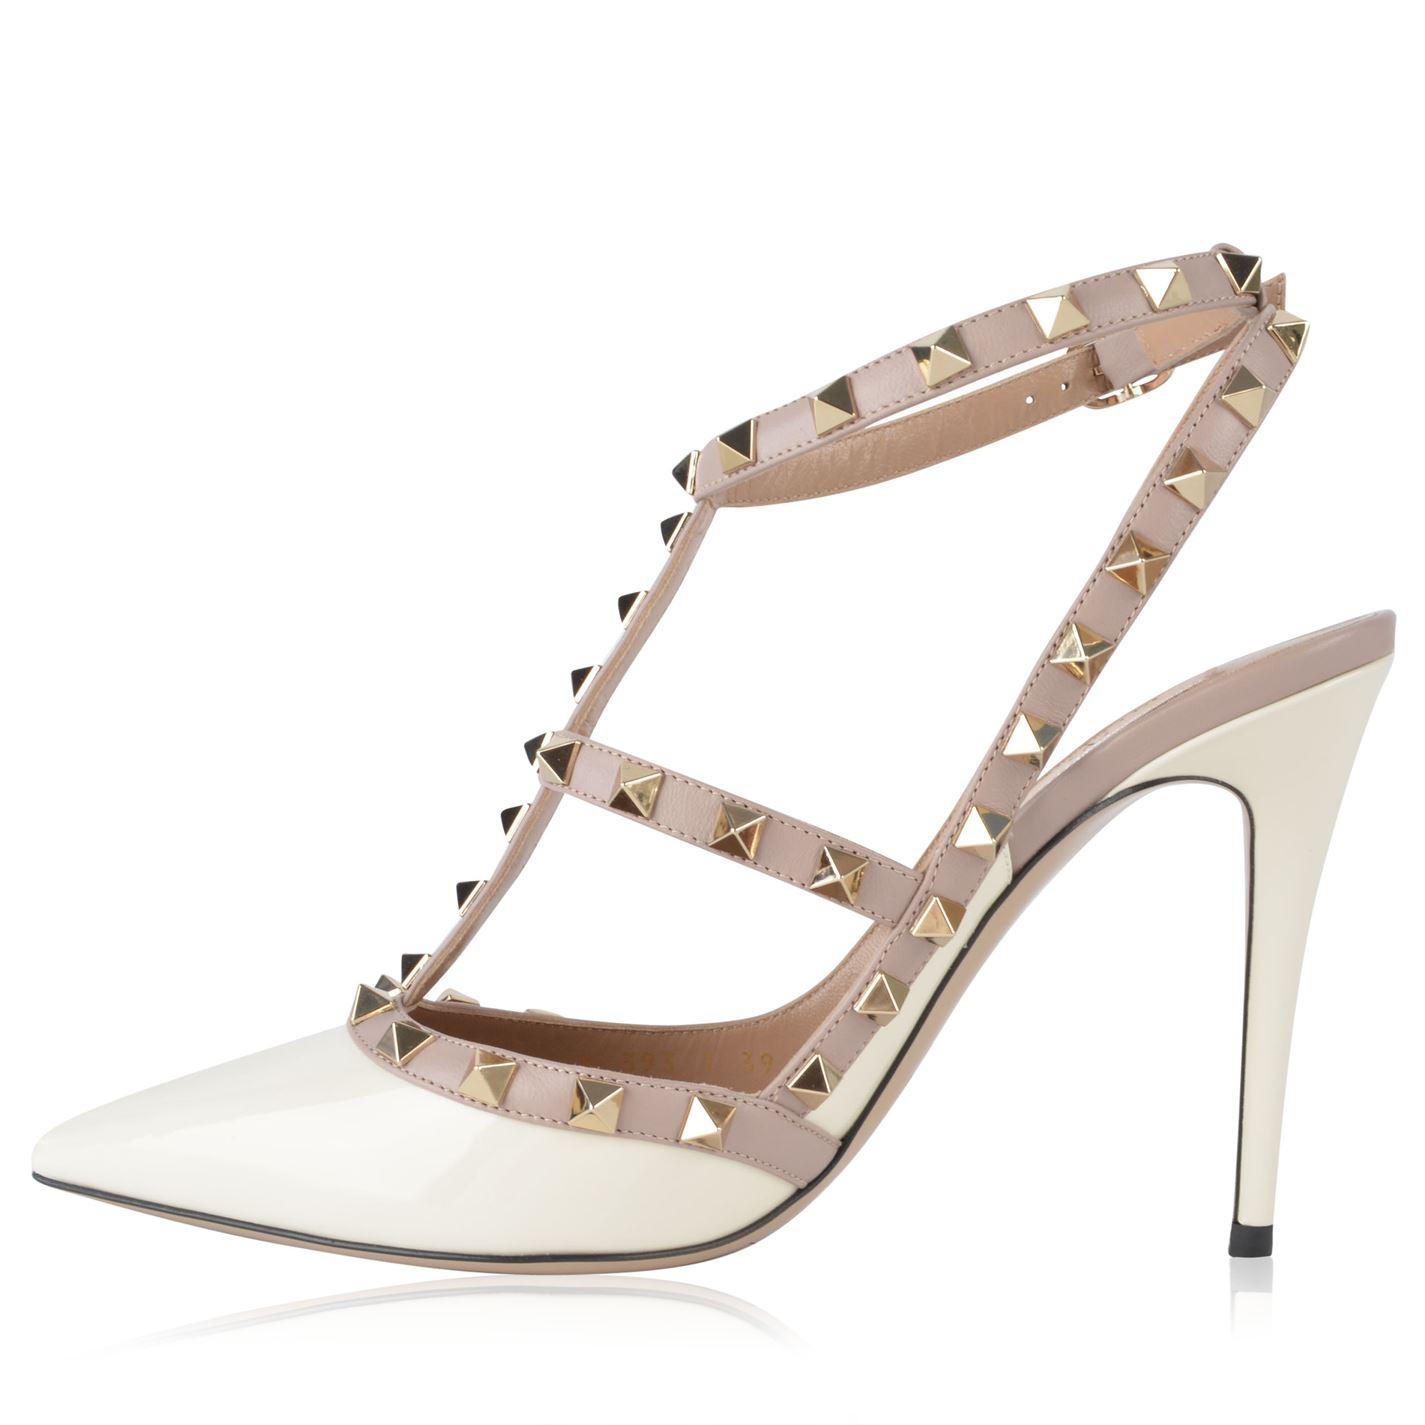 05a90acc6 Valentino - Multicolor Rockstud 100 Ankle Strap Heels - Lyst. View  fullscreen